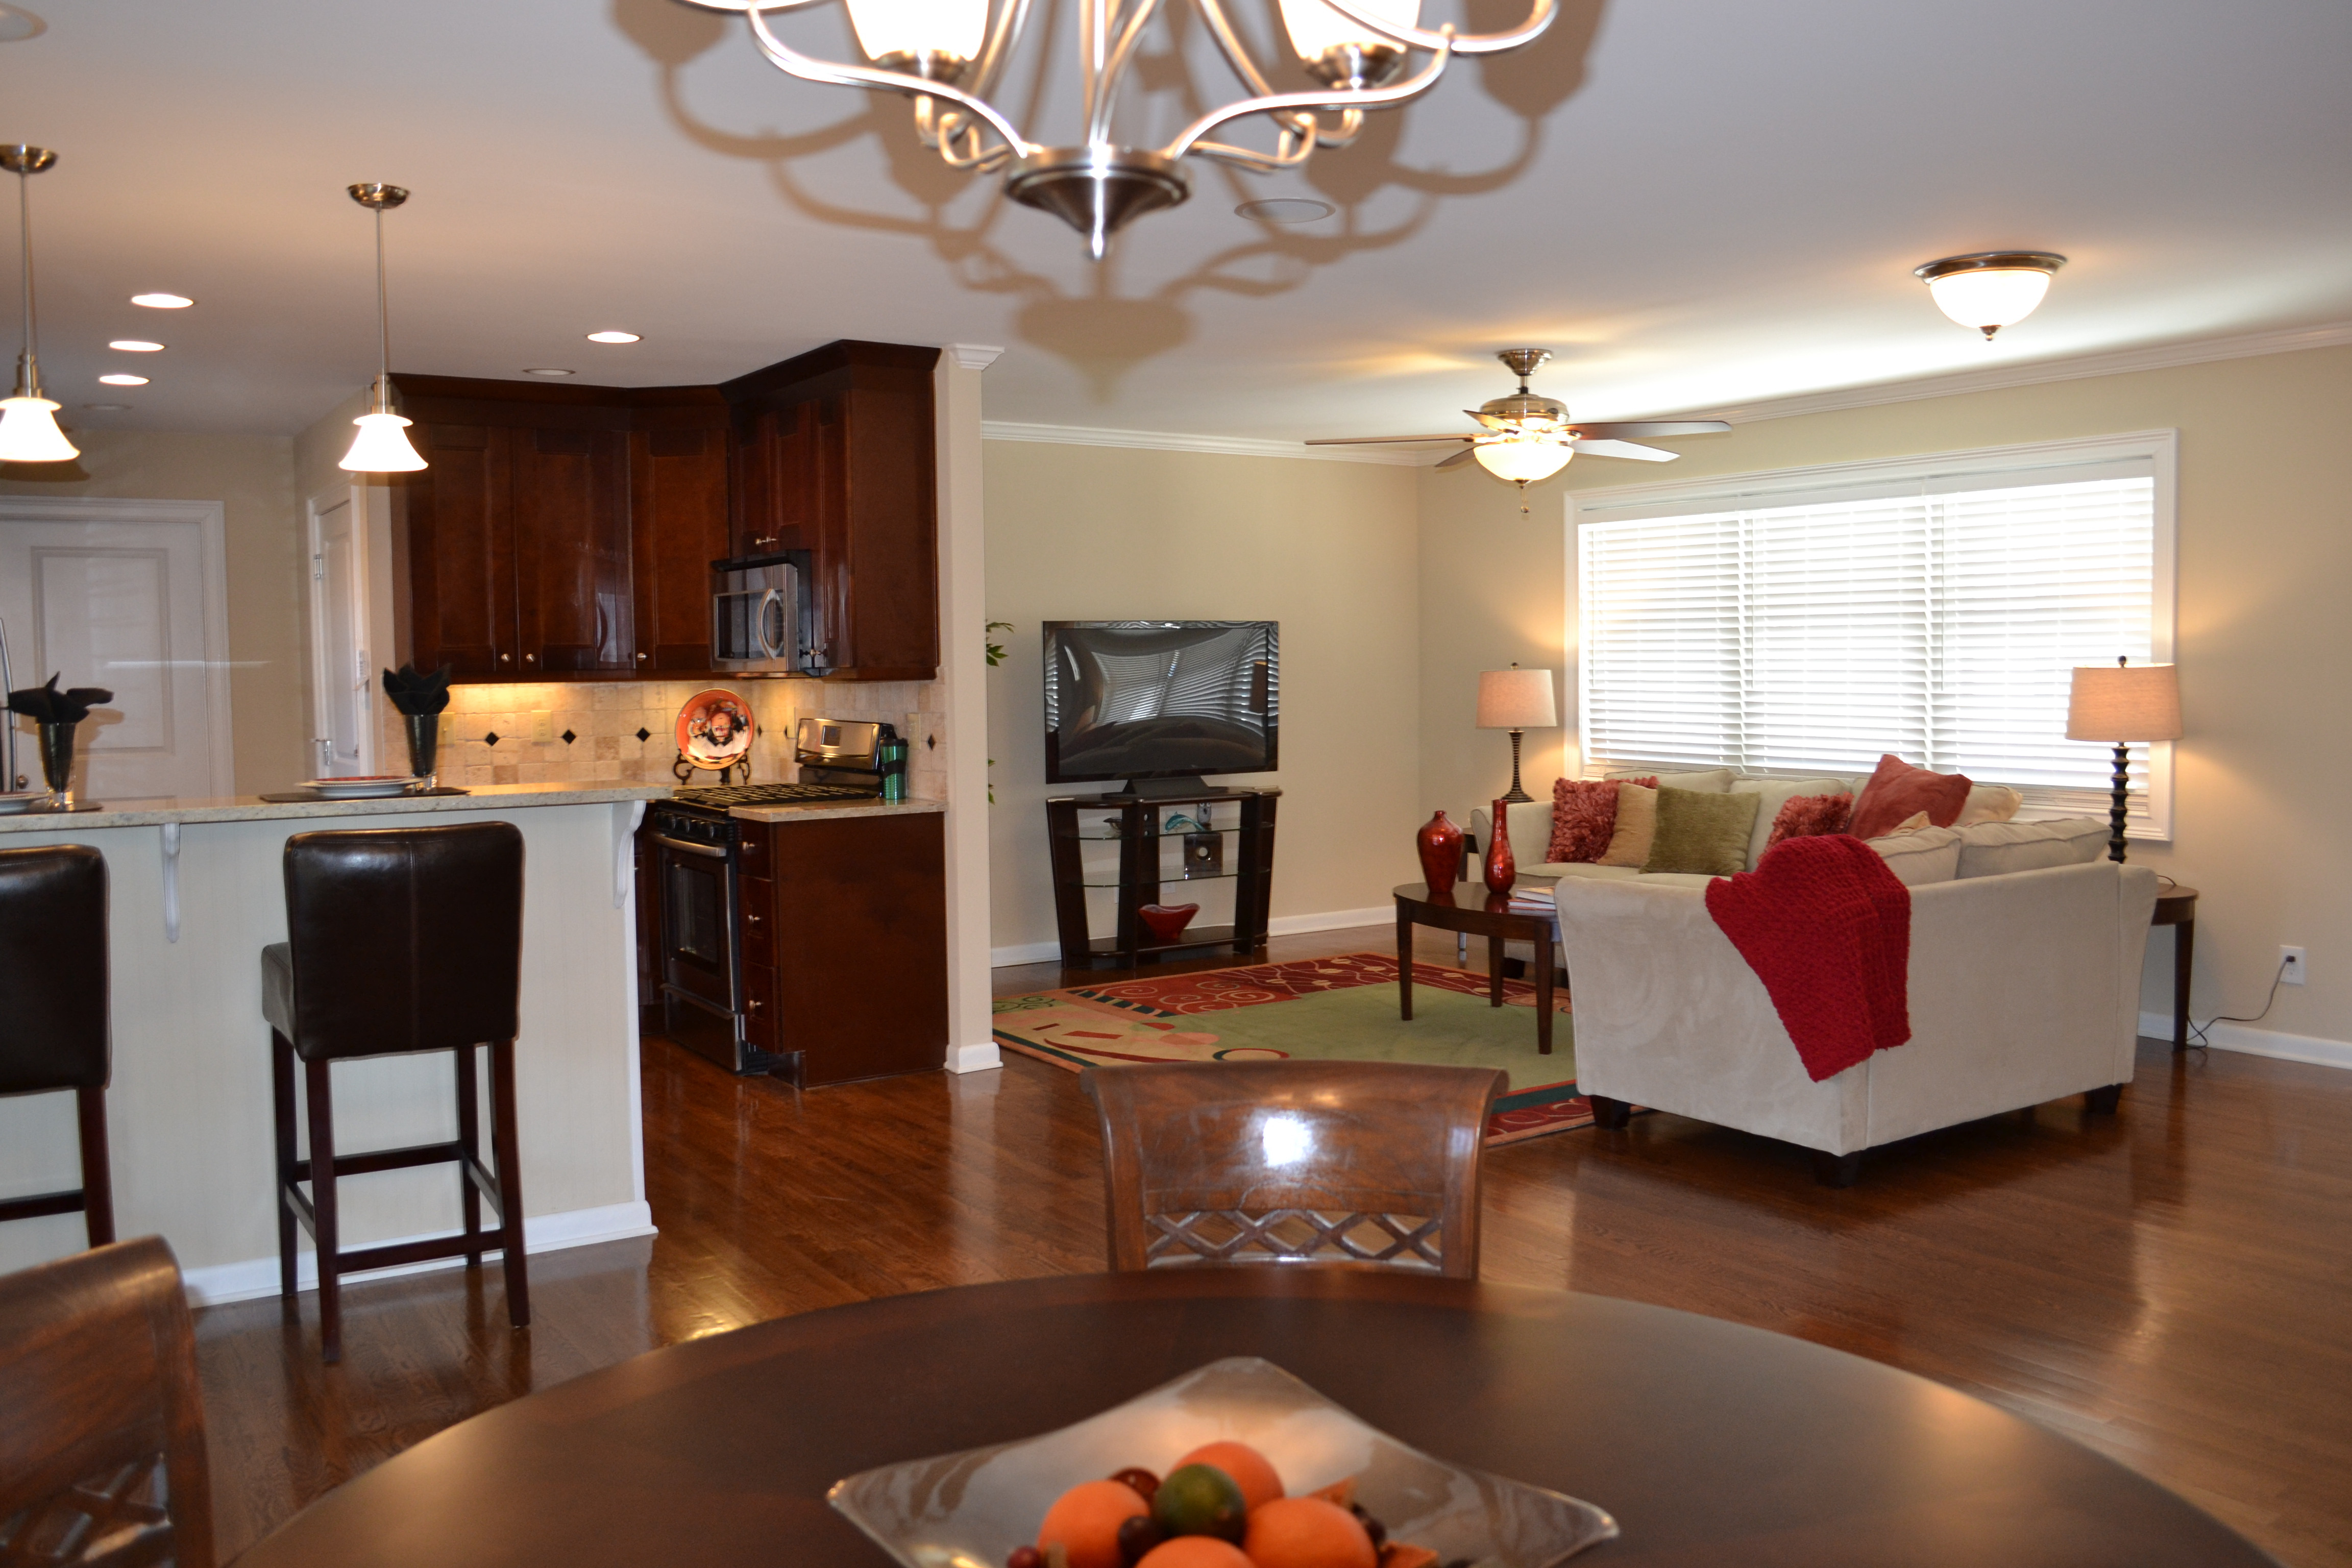 Best ideas about Kitchen Open To Family Room . Save or Pin Kitchen Open To Family Room Kitchen Design Ideas Now.